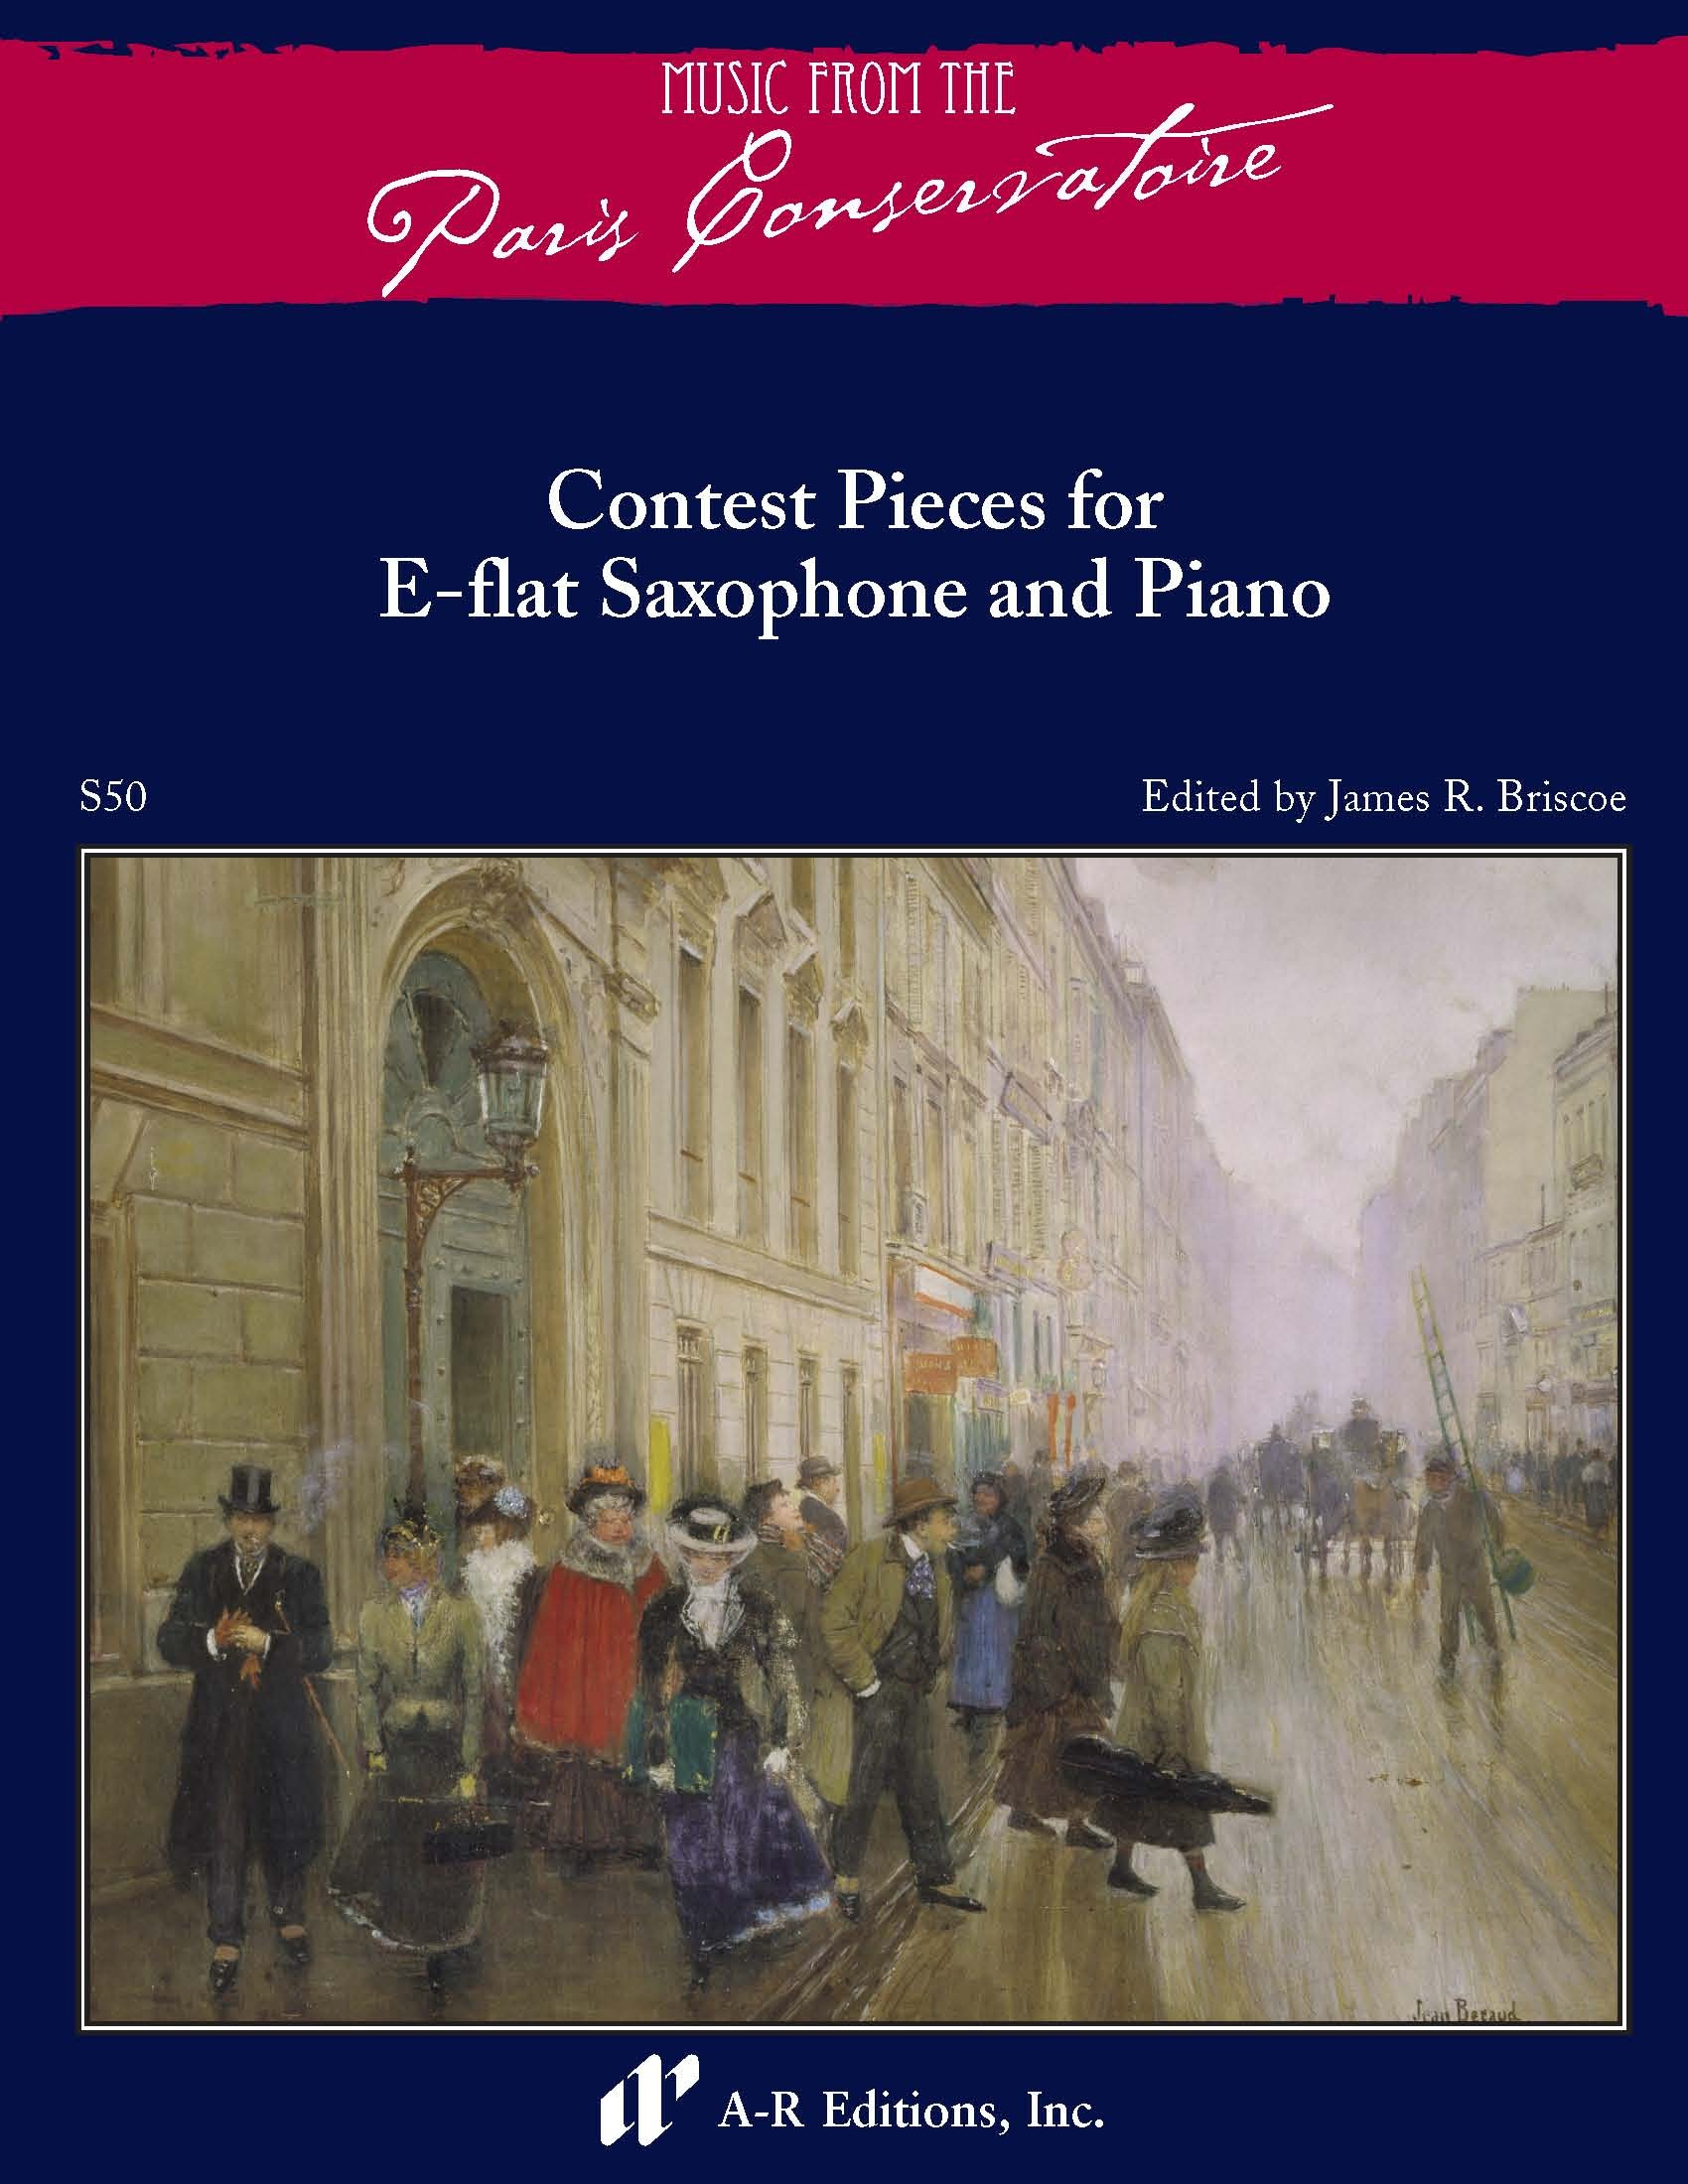 Contest Solos for E-flat Saxophone and Piano